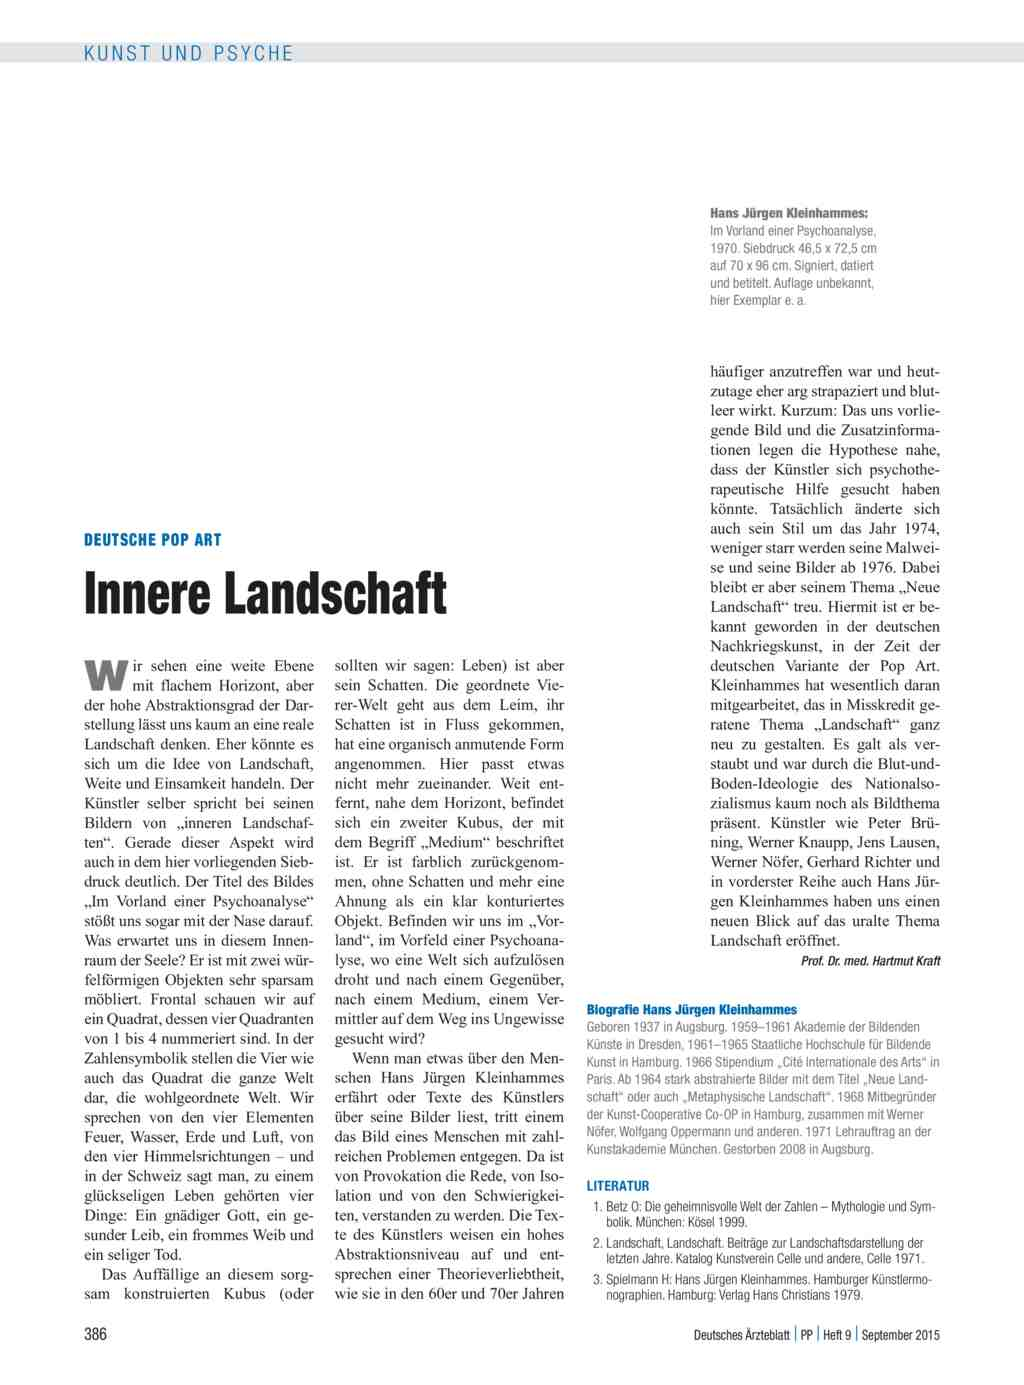 Deutsche Pop Art: Innere Landschaft